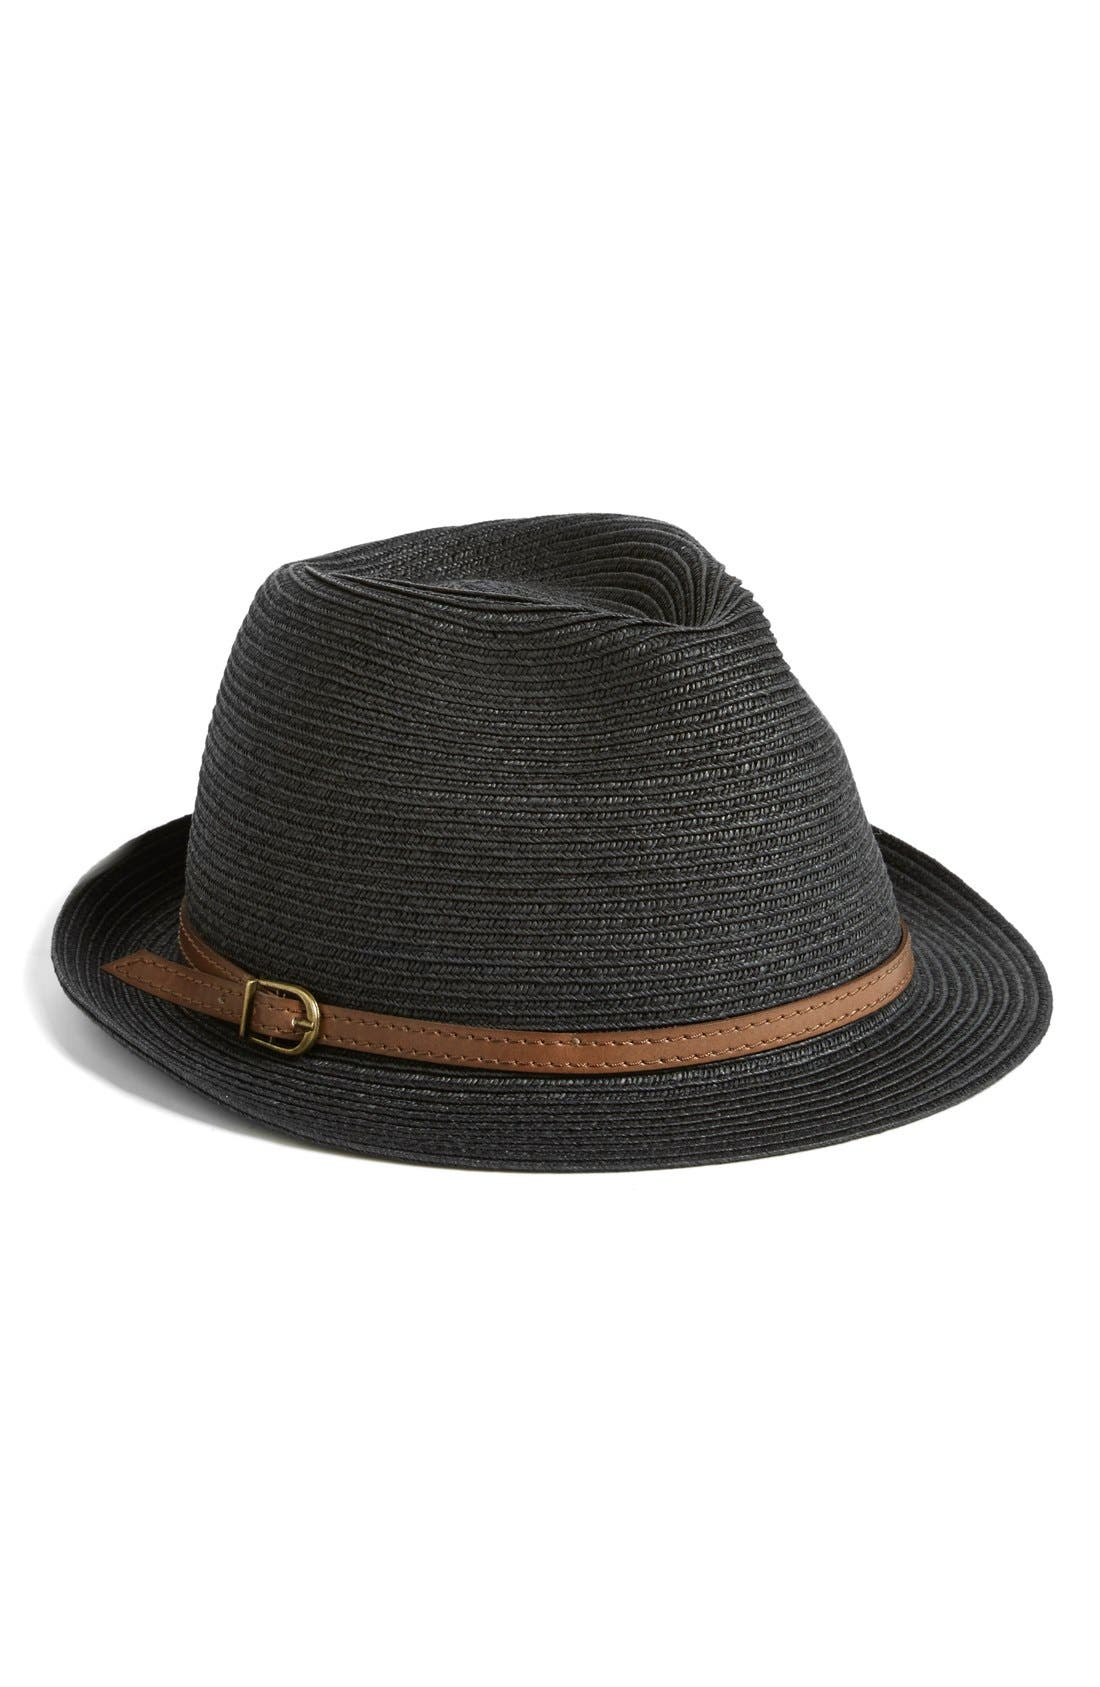 NORDSTROM, 'Stone Washed' Fedora, Main thumbnail 1, color, 001